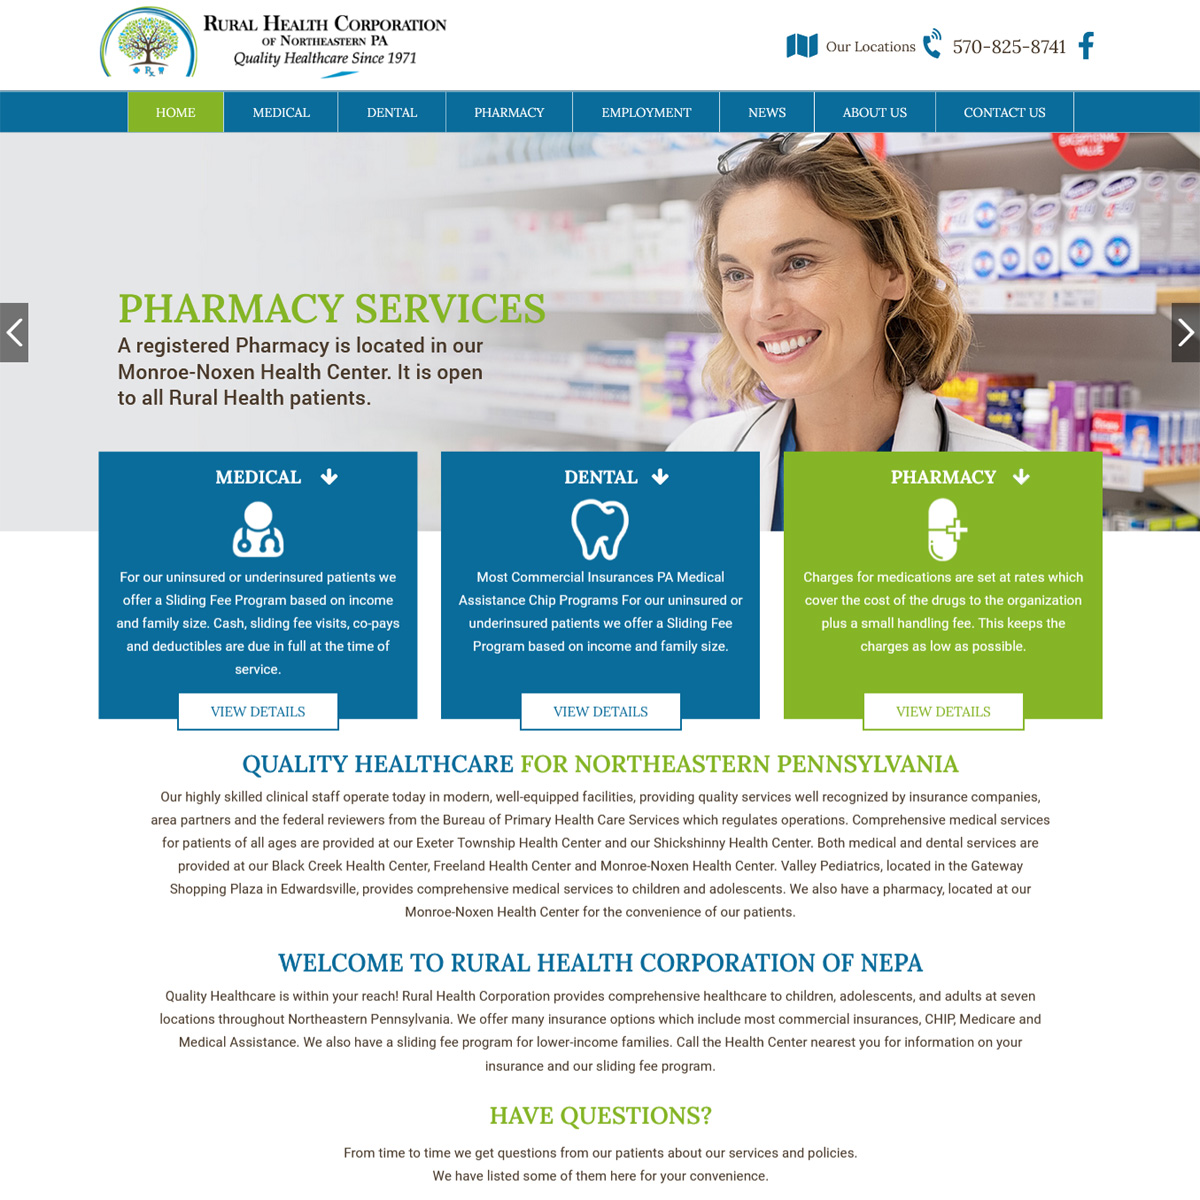 Rural Health Corporation Website Design